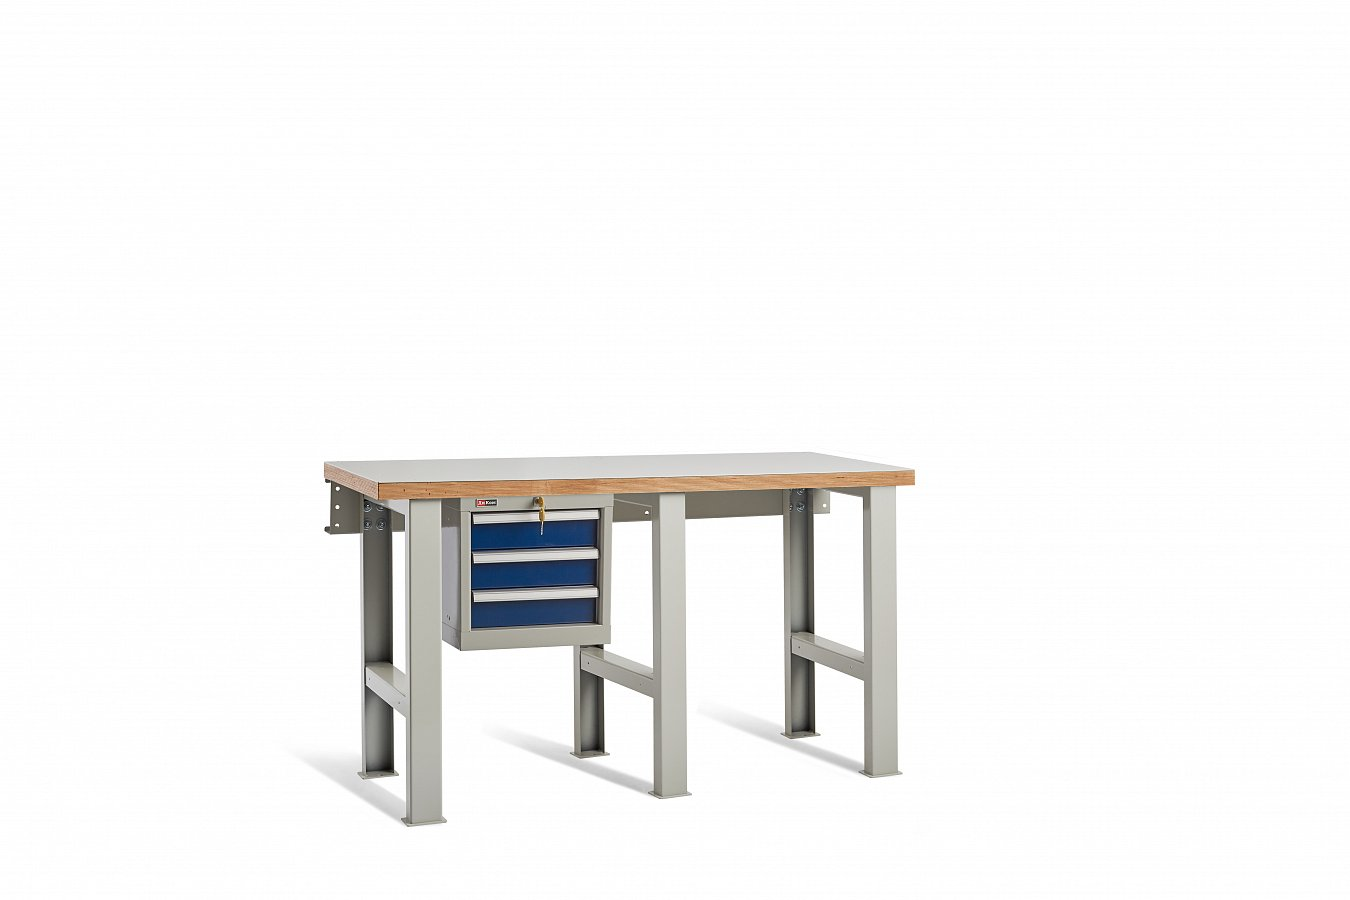 DiKom Workbench VS-150-02 (2)